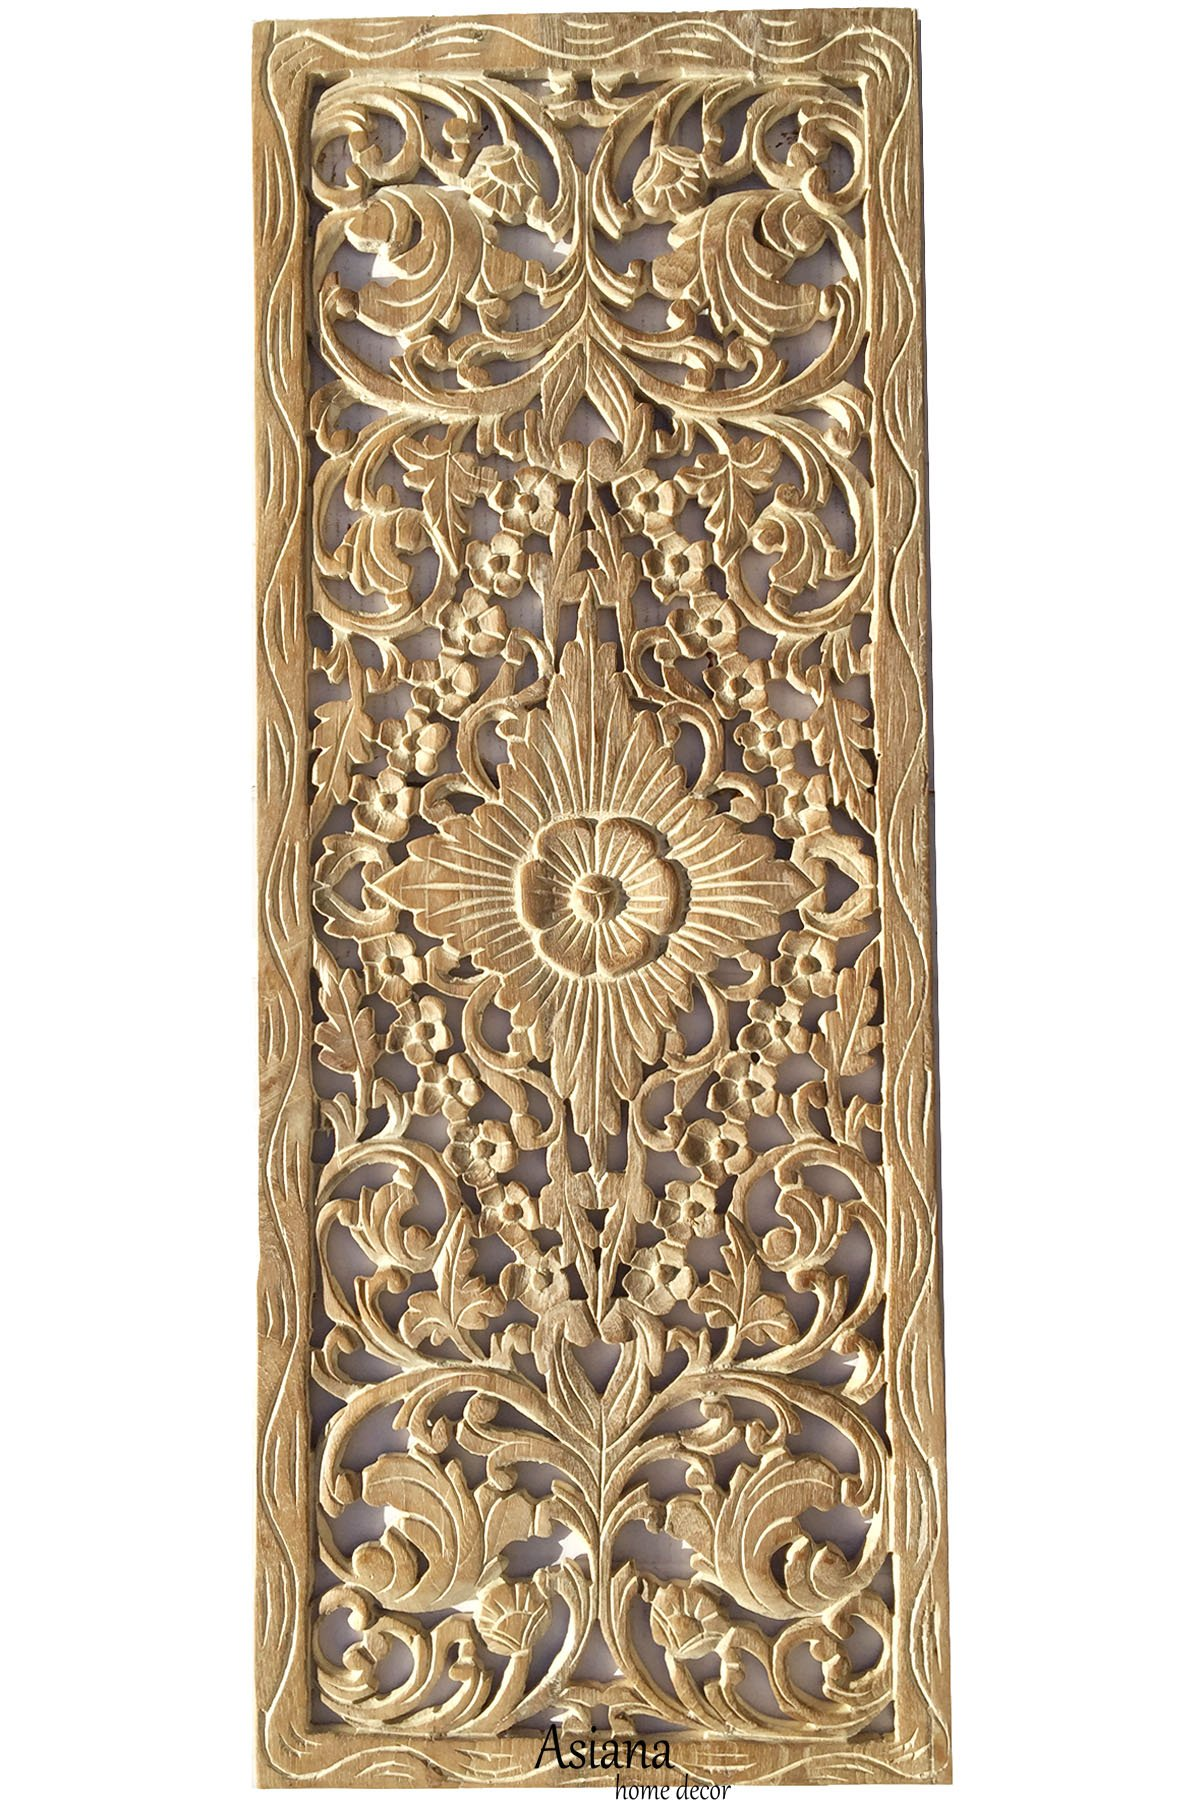 Sunshine Tropical Floral Wall Decor. Oriental Wood Carved Wall Art Panels. Size 35.5''x13.5'' (White Wash)